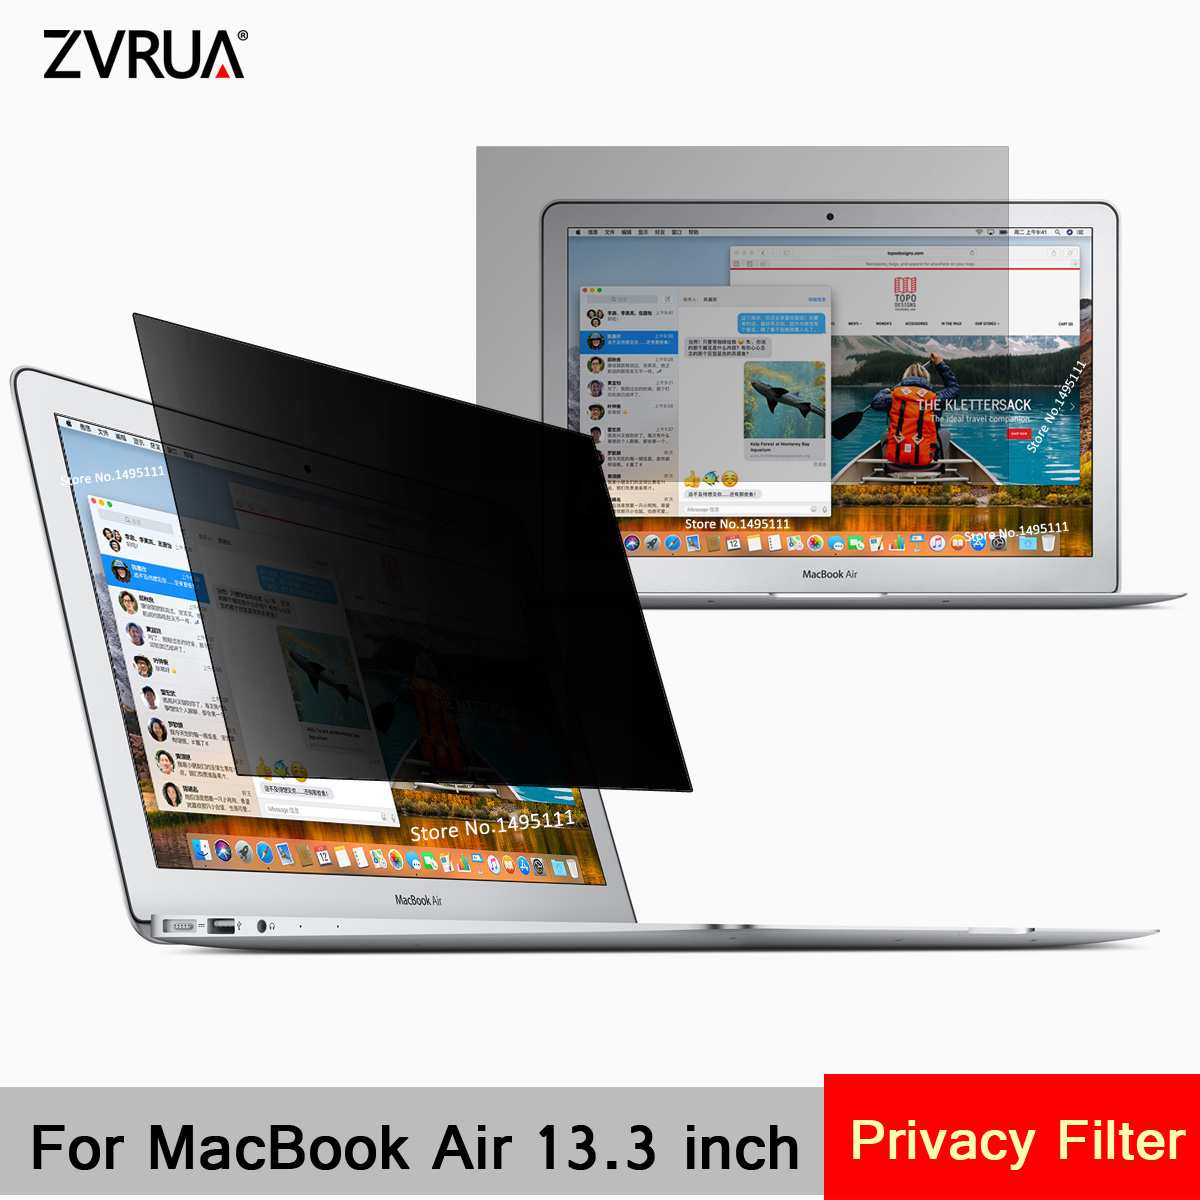 For Apple MacBook Air 13.3 Inch (286mm*179mm) Privacy Filter Laptop Notebook Anti-glare Screen Protector Protective Film